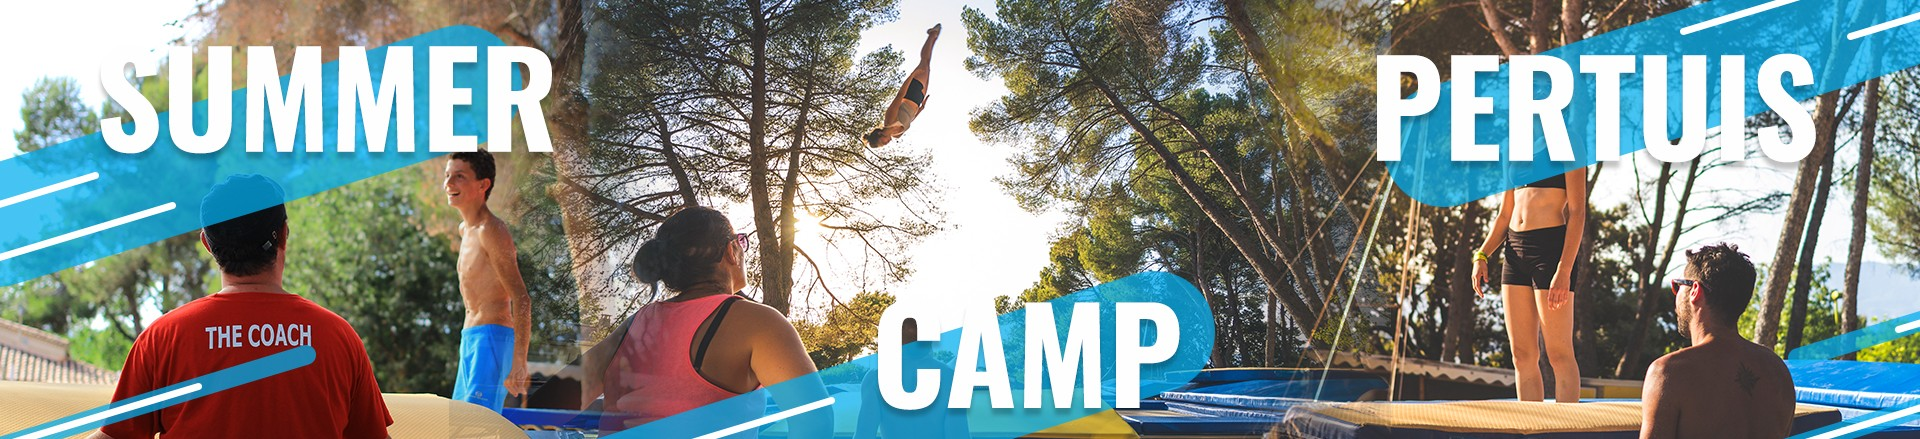 staff trampoline au Summer Camp Pertuis